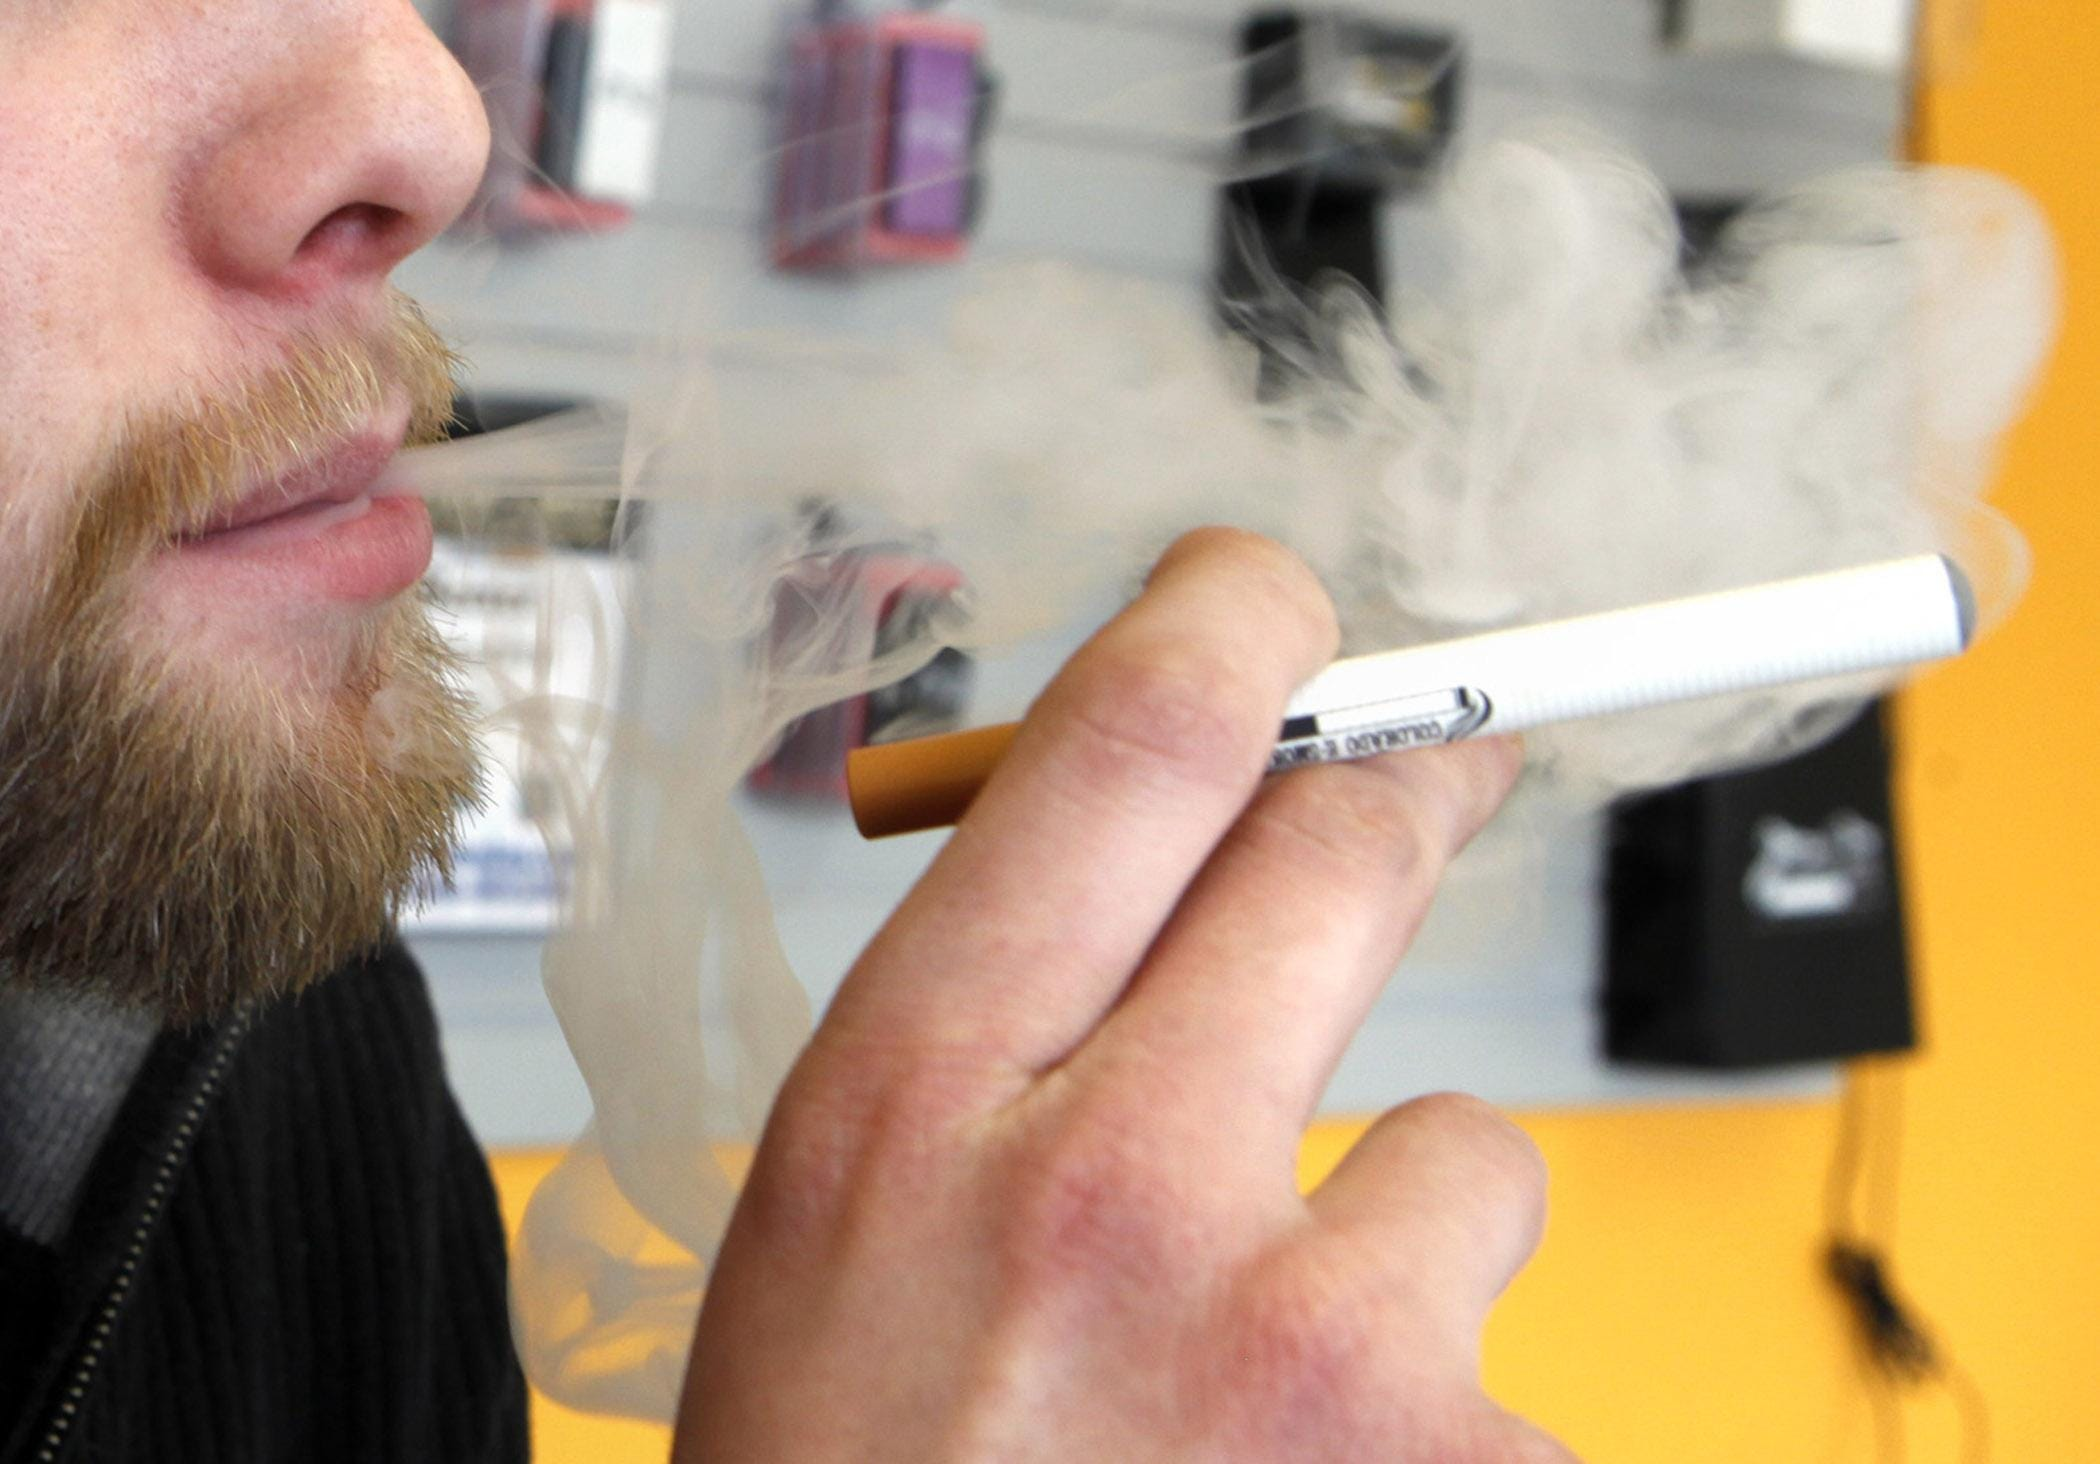 Volcano electronic cigarette review